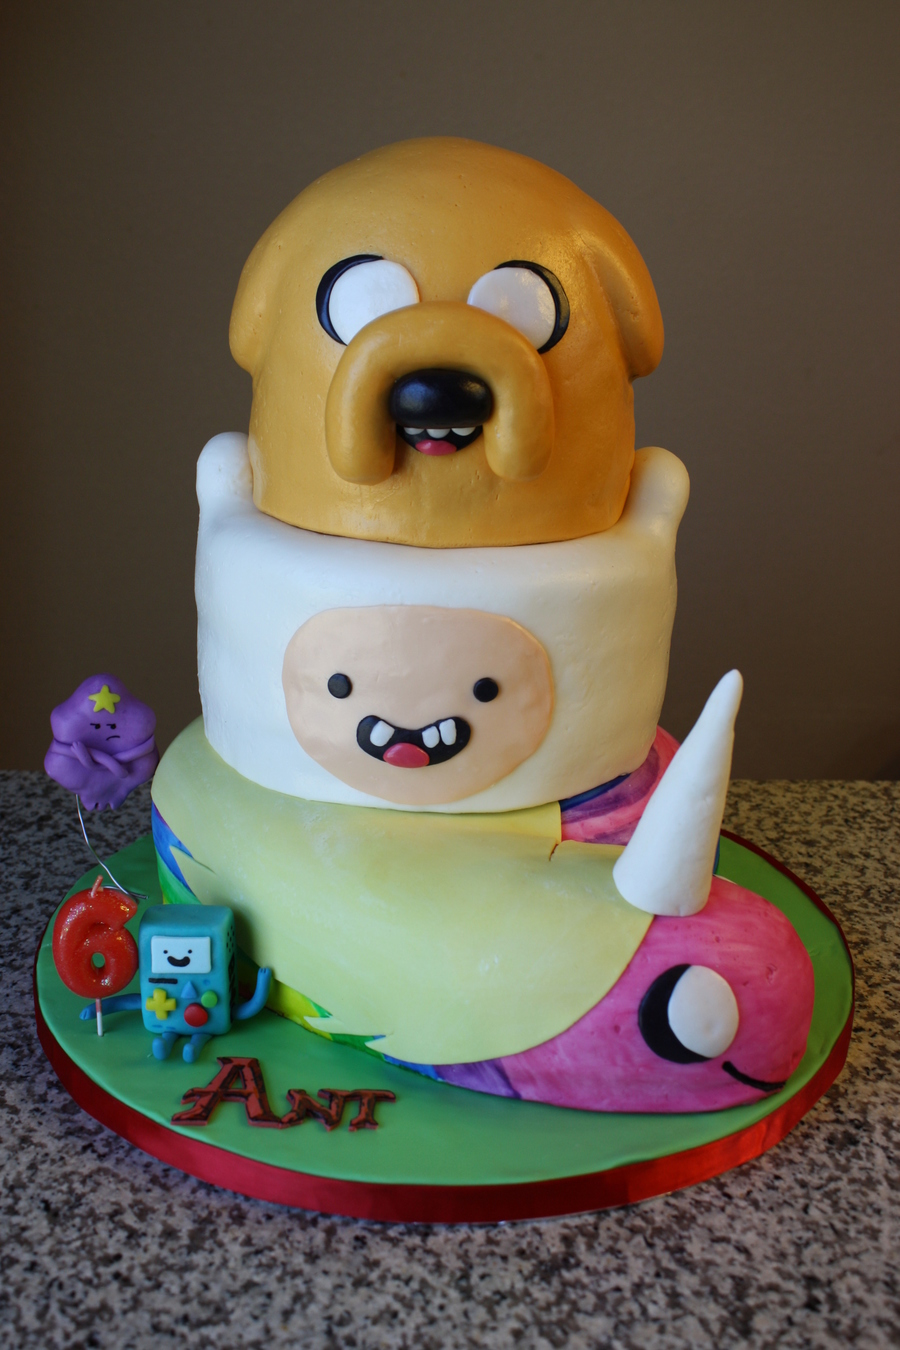 Pleasing Adventure Time Birthday Cake Cakecentral Com Funny Birthday Cards Online Fluifree Goldxyz